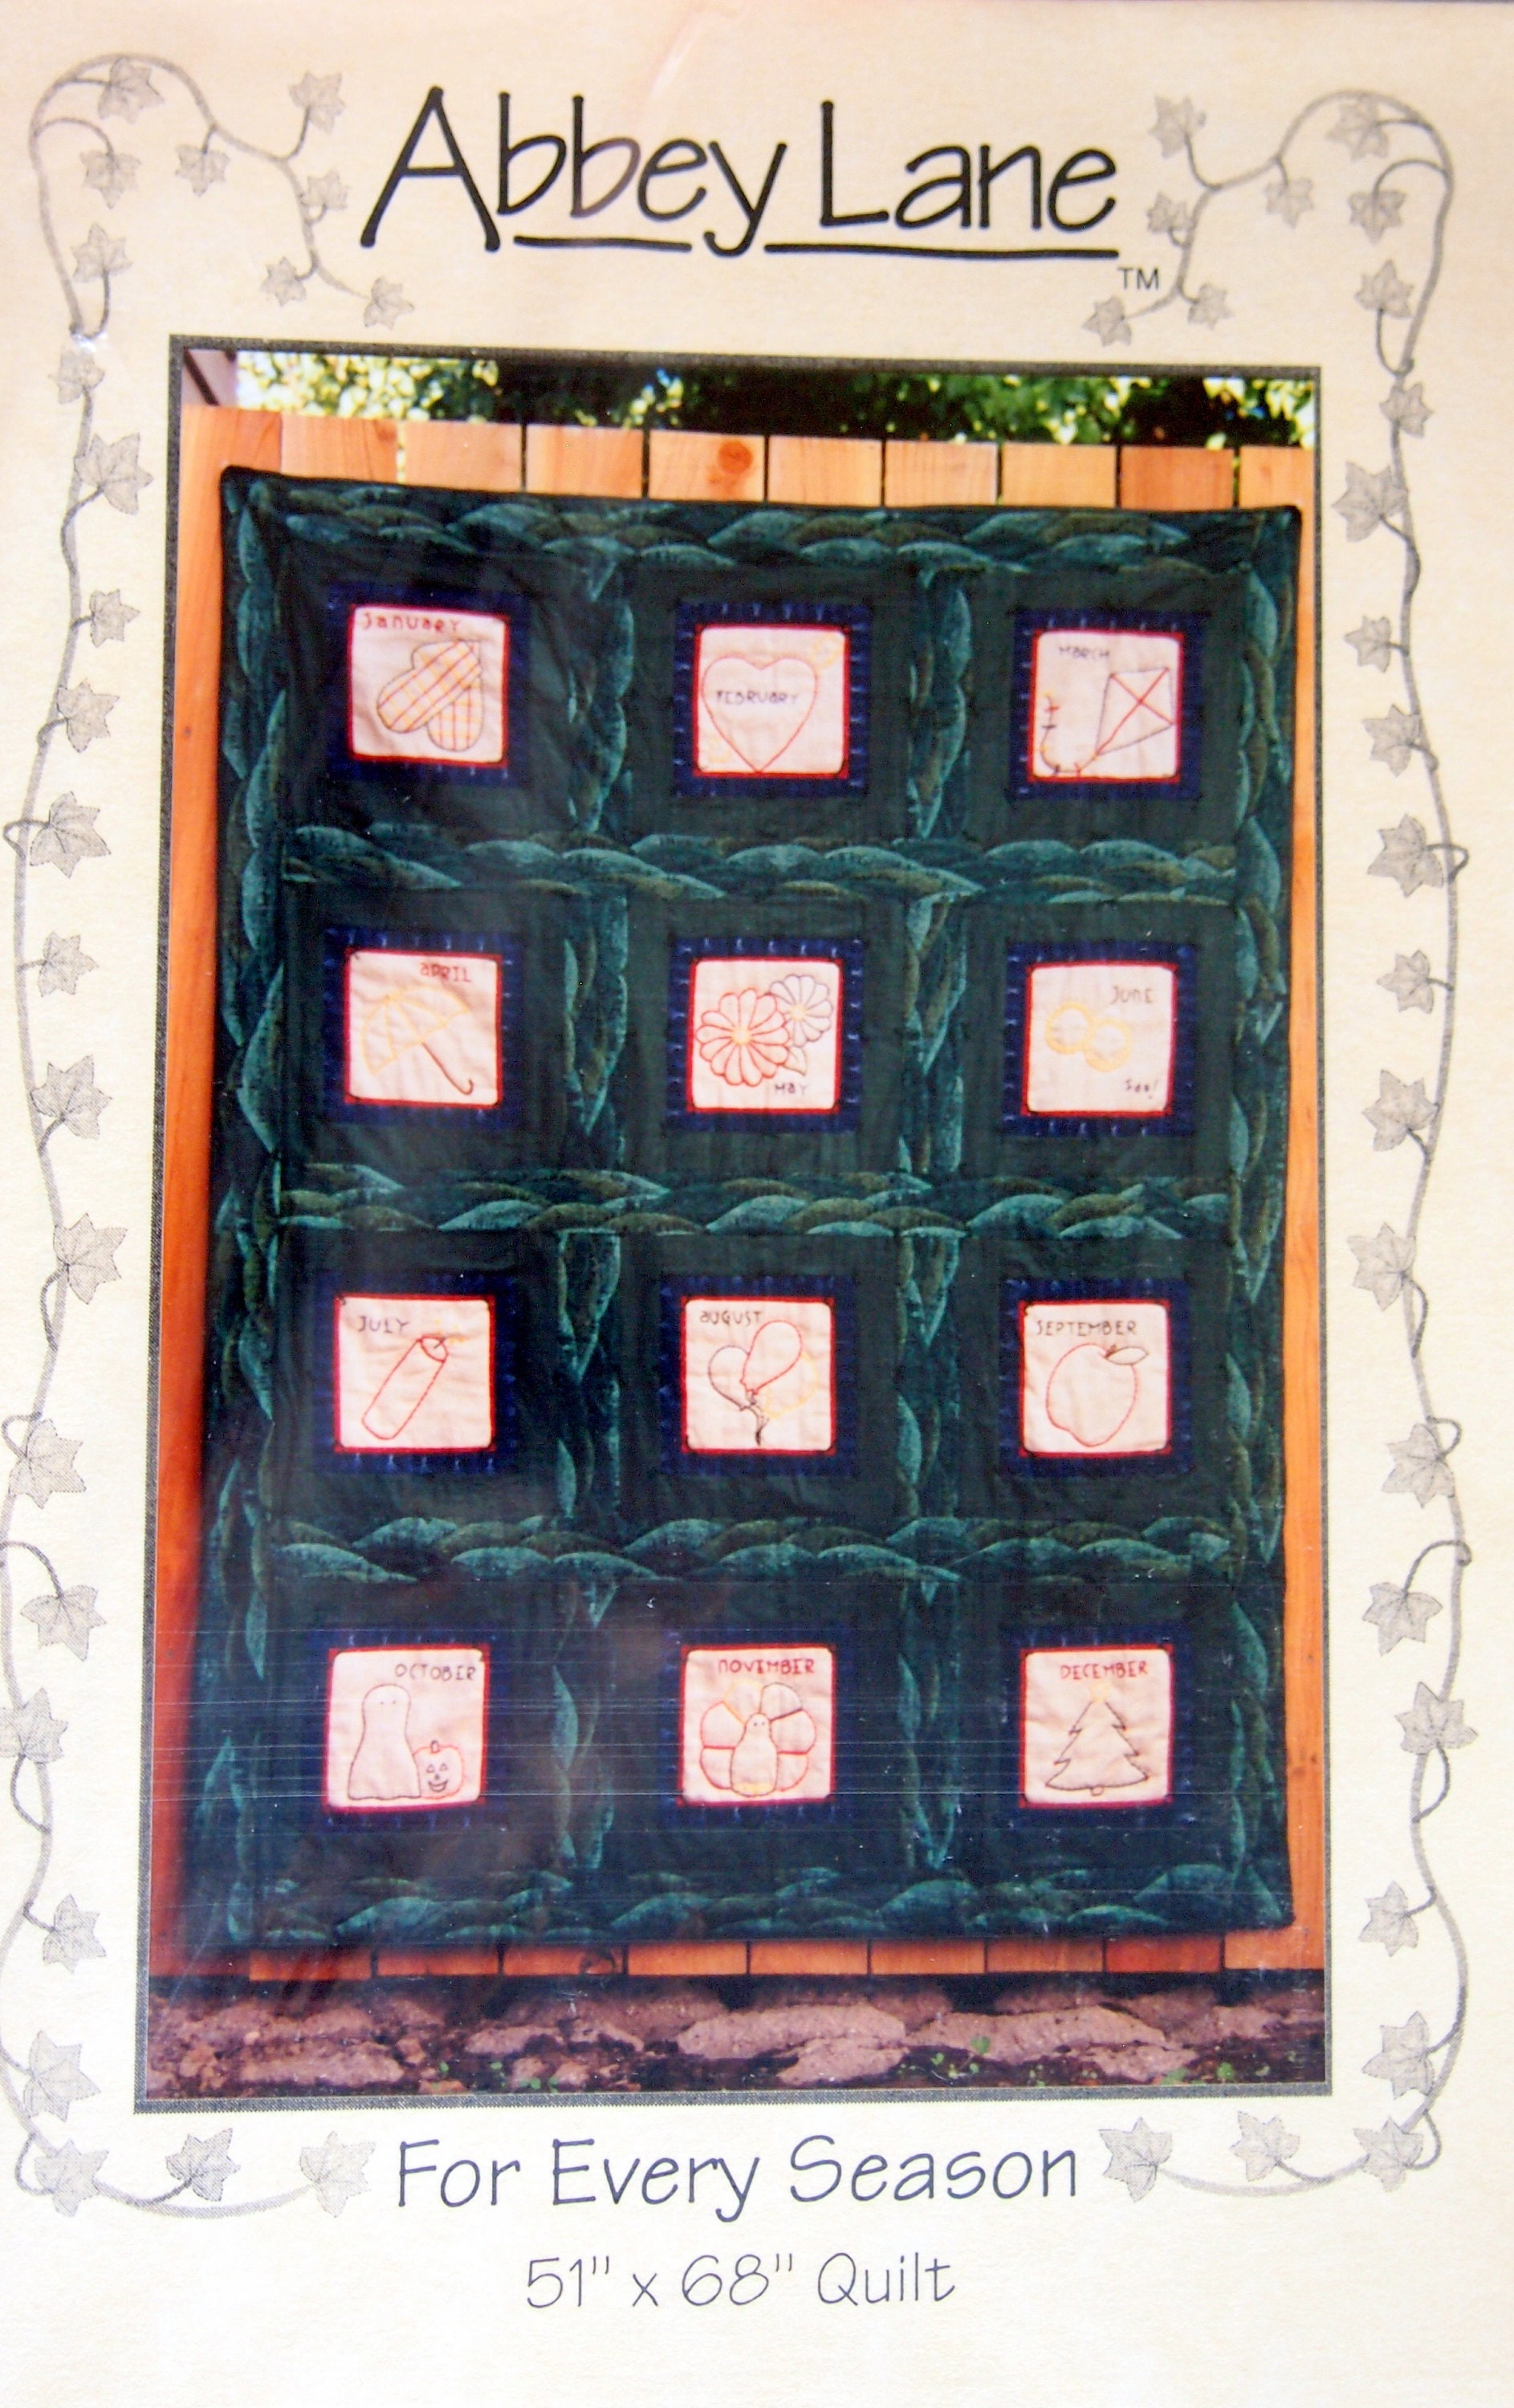 Stars And Stripes Forever By Valarie Seaman And Abbey Lane Sewing And Quilting Pattern Packet 2001